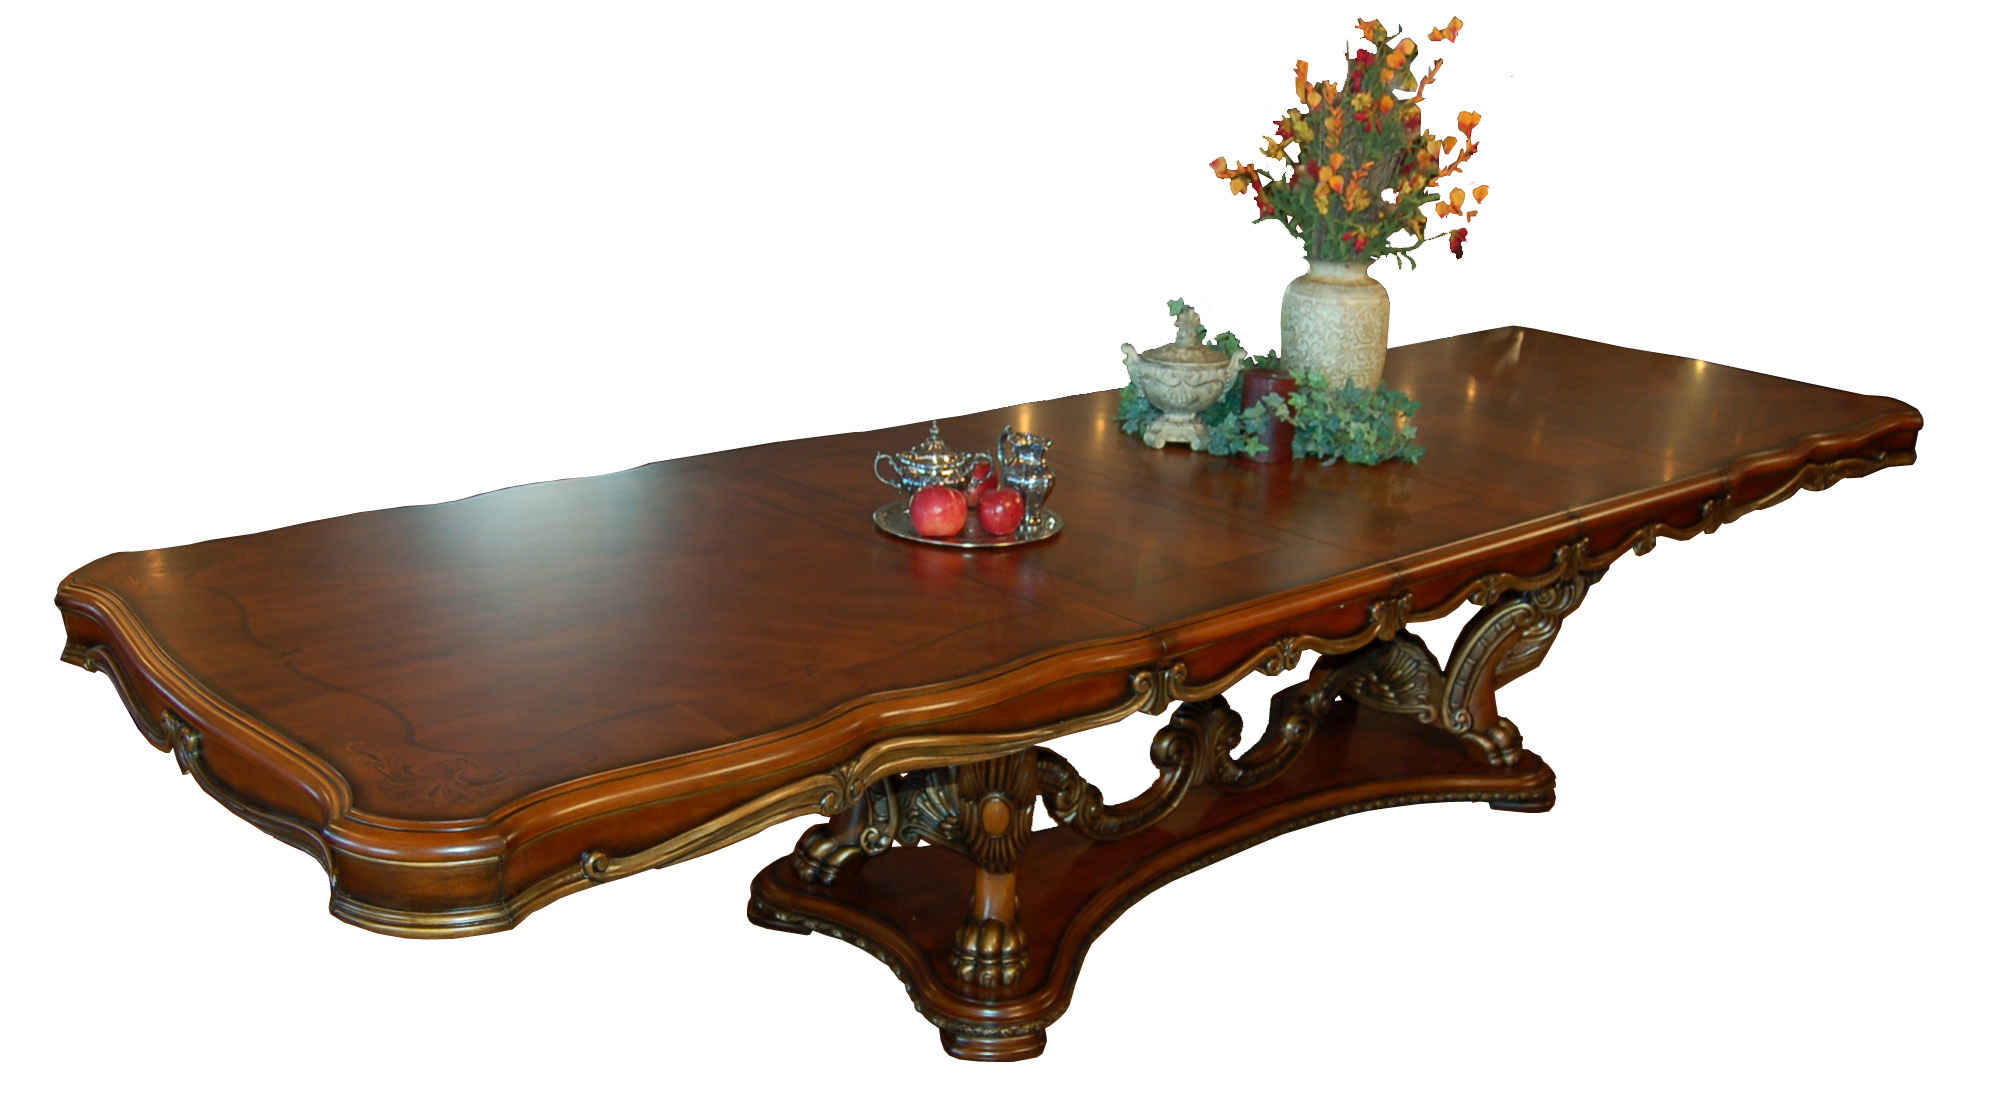 Mahogany and more dining tables ornate french rococo for Large dining room table